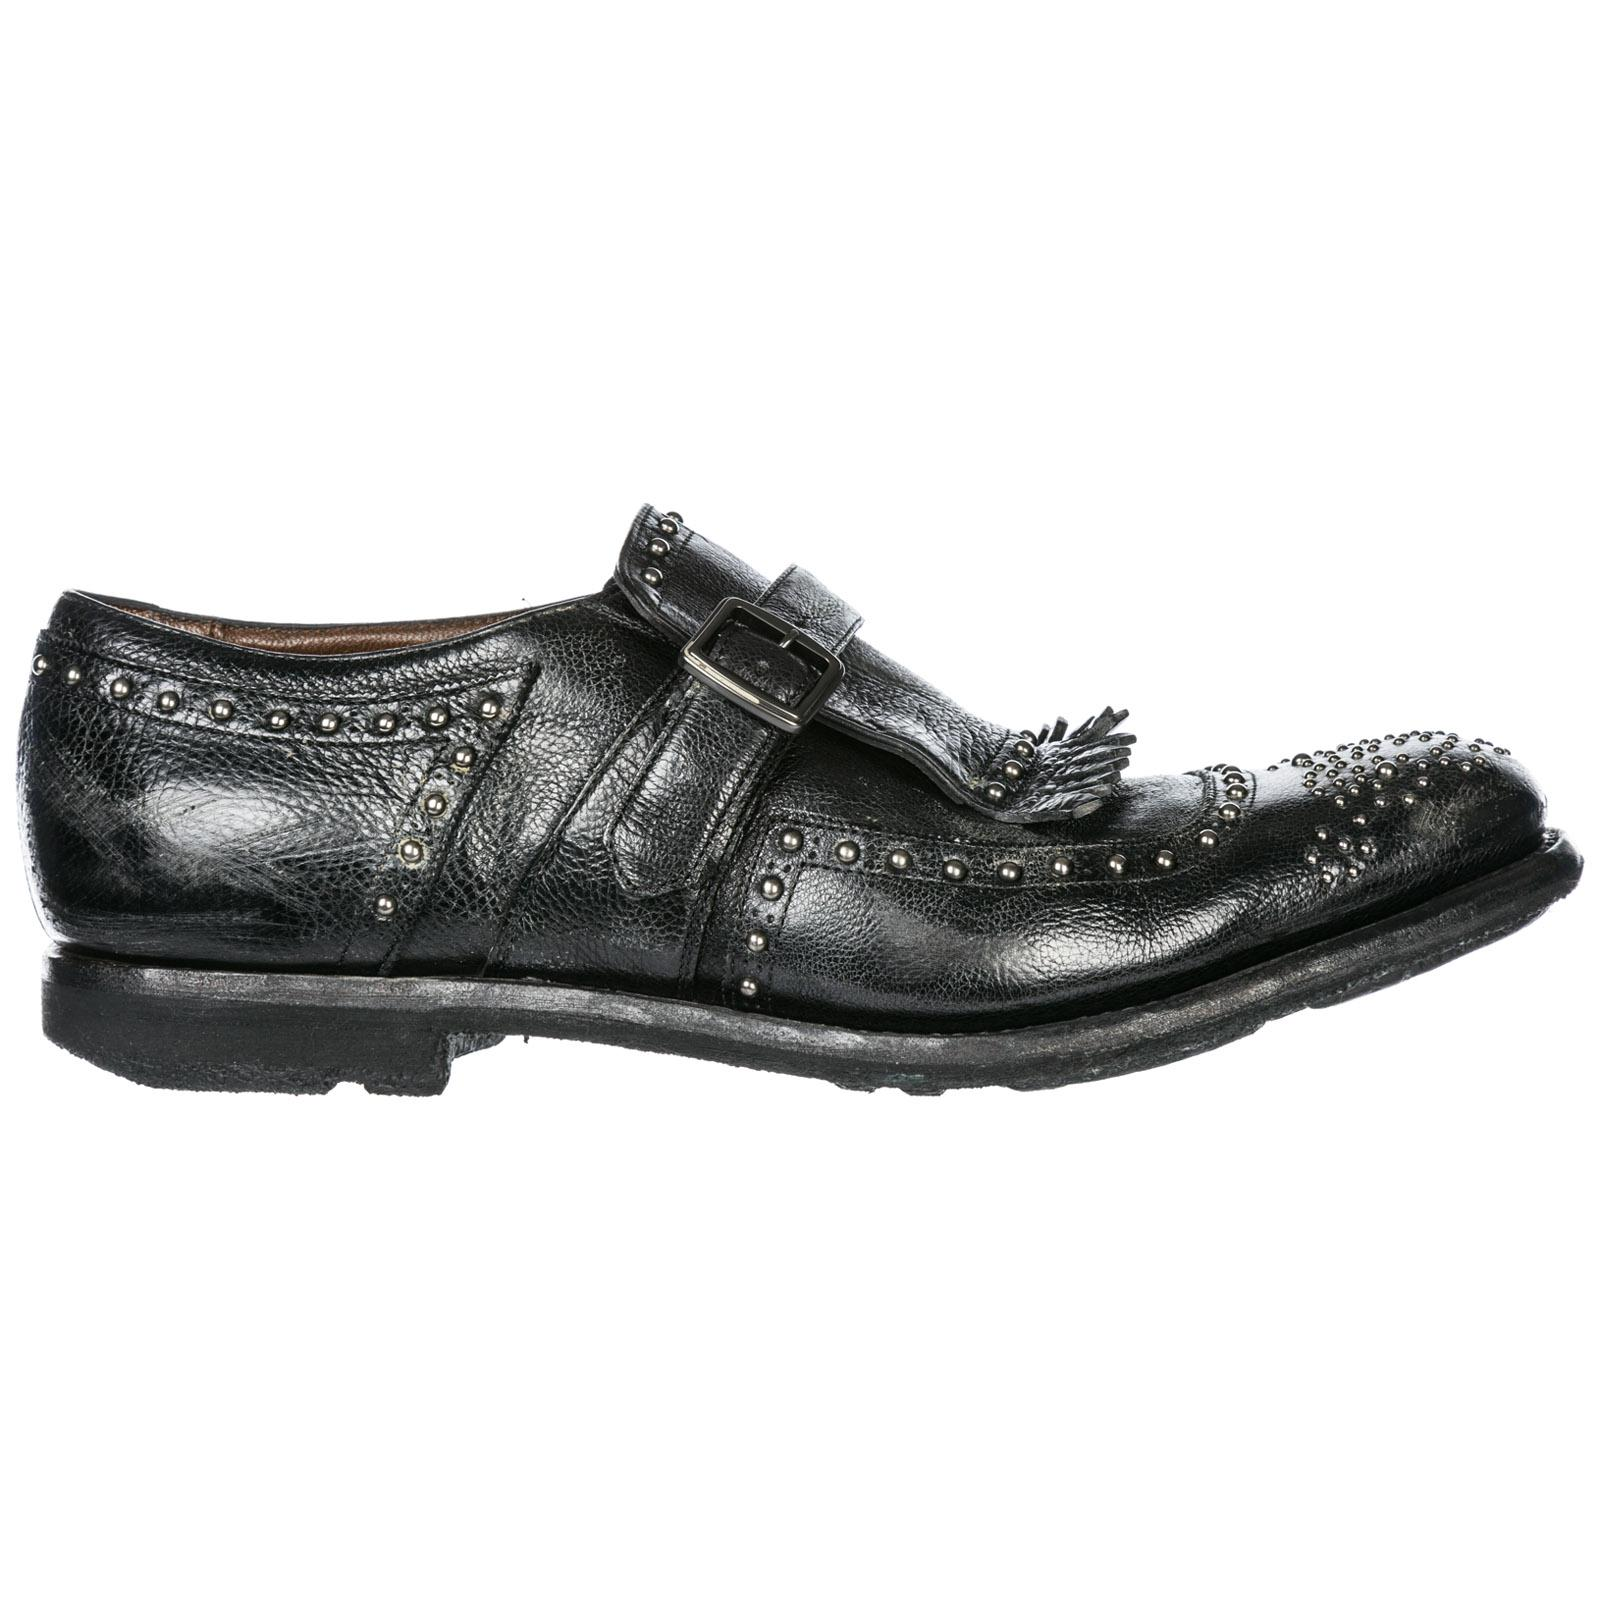 Church s Classic Leather Formal Shoes Slip On Shangai in Black for ... b0ccf4fc4ab